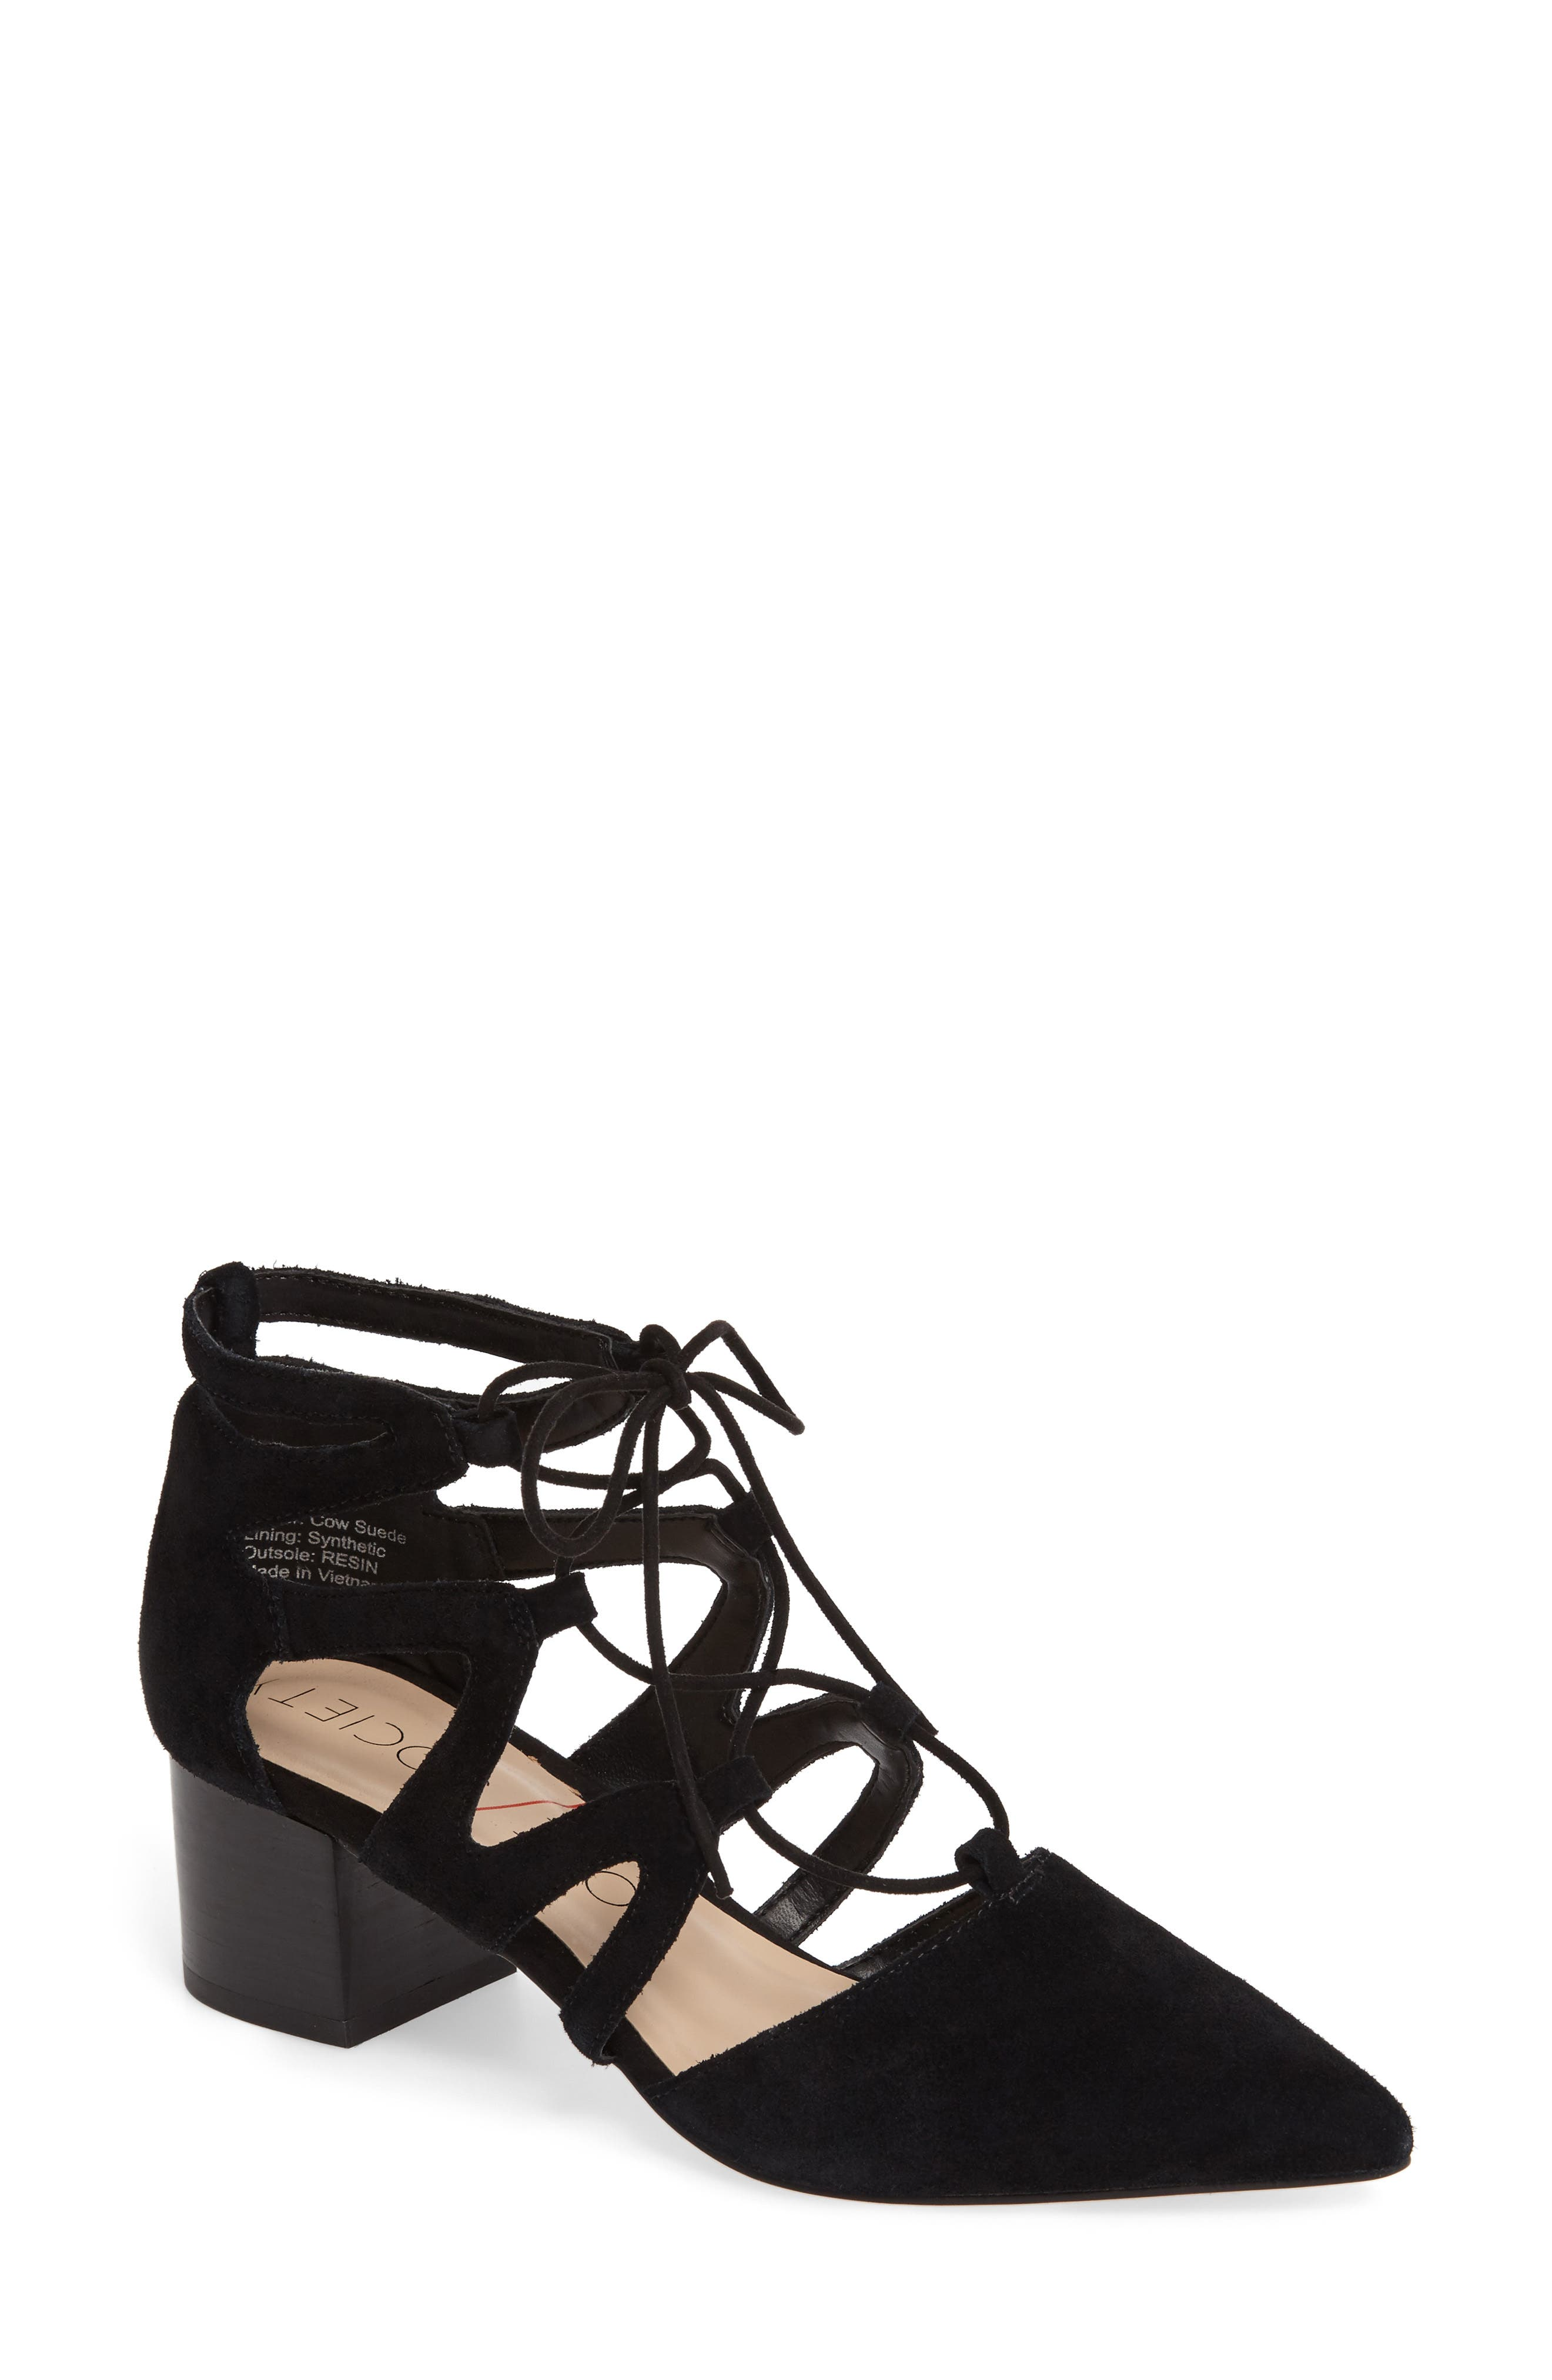 Main Image - Sole Society Kitt Ghillie Lace Pump (Women)